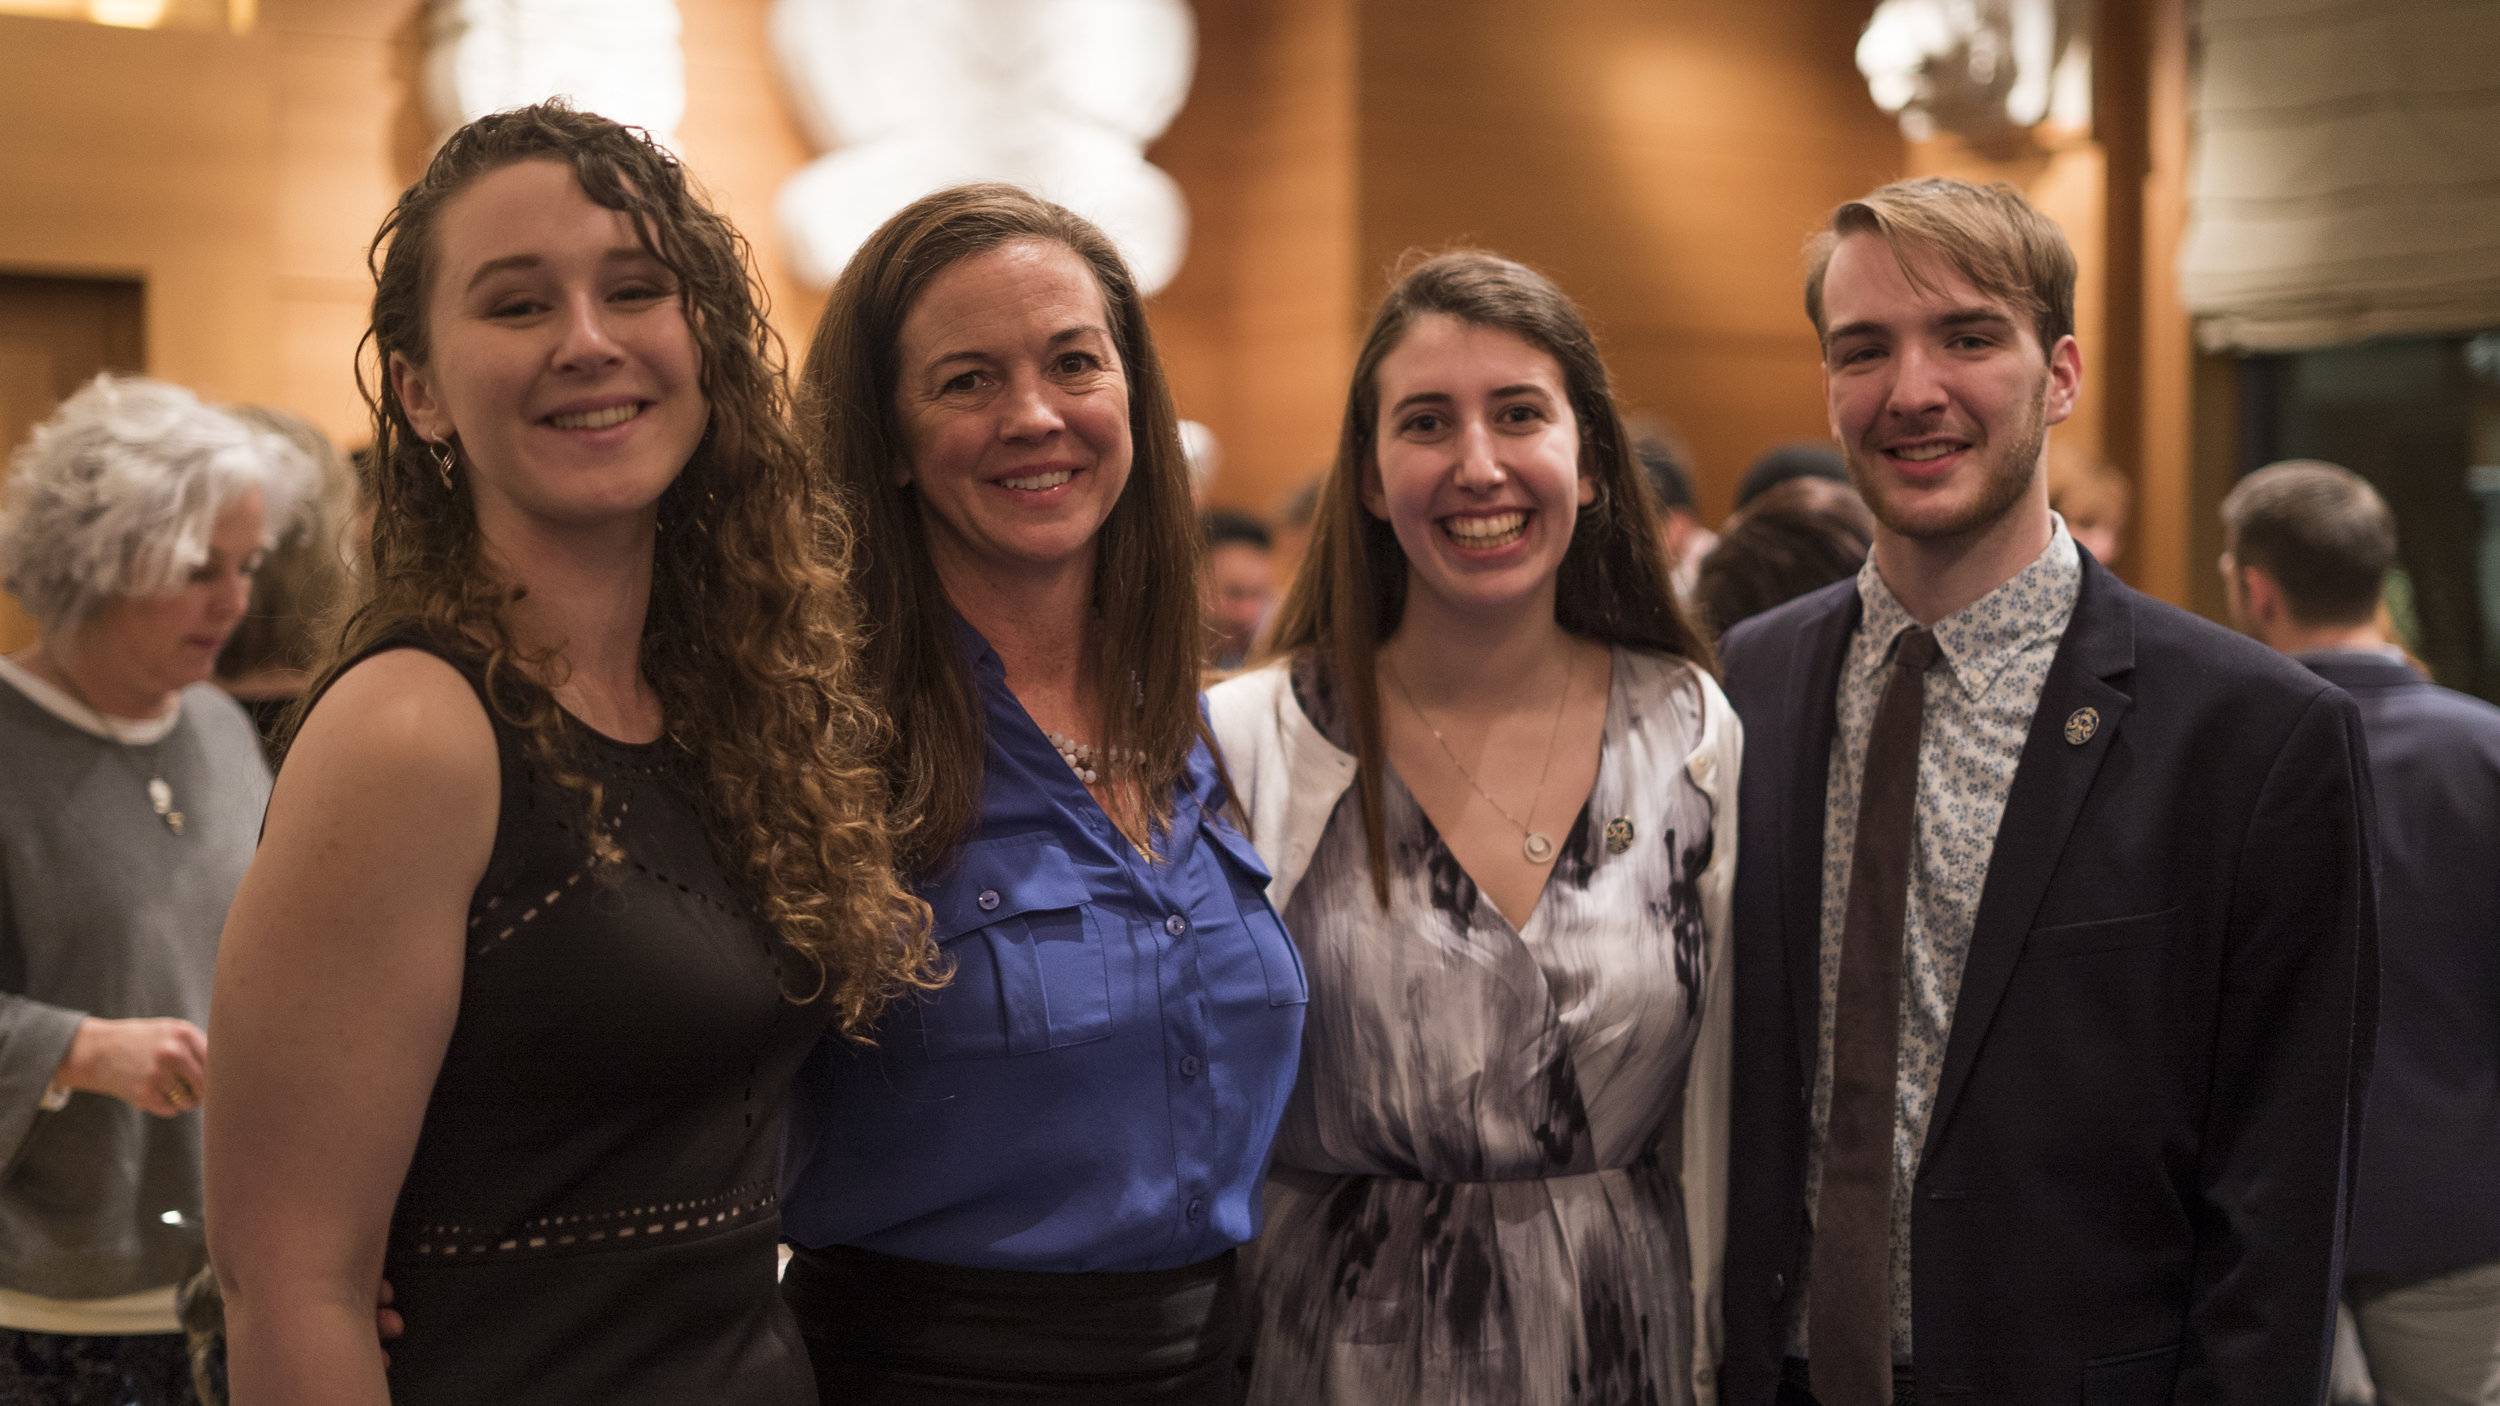 CBSC Fellows Named to 100 Senior Honorary - Three CBSC Fellows were named to Emory's 100 Senior Honorary for the 2019 graduating class. Pictured at the January 22nd, 2019 Induction ceremony Reception from left are Samantha Flaugher (CBSC 2018), Kate Grace (CBSC Director), Maya Bornstein (CBSC 2017), and David Nifong (CBSC 2018).